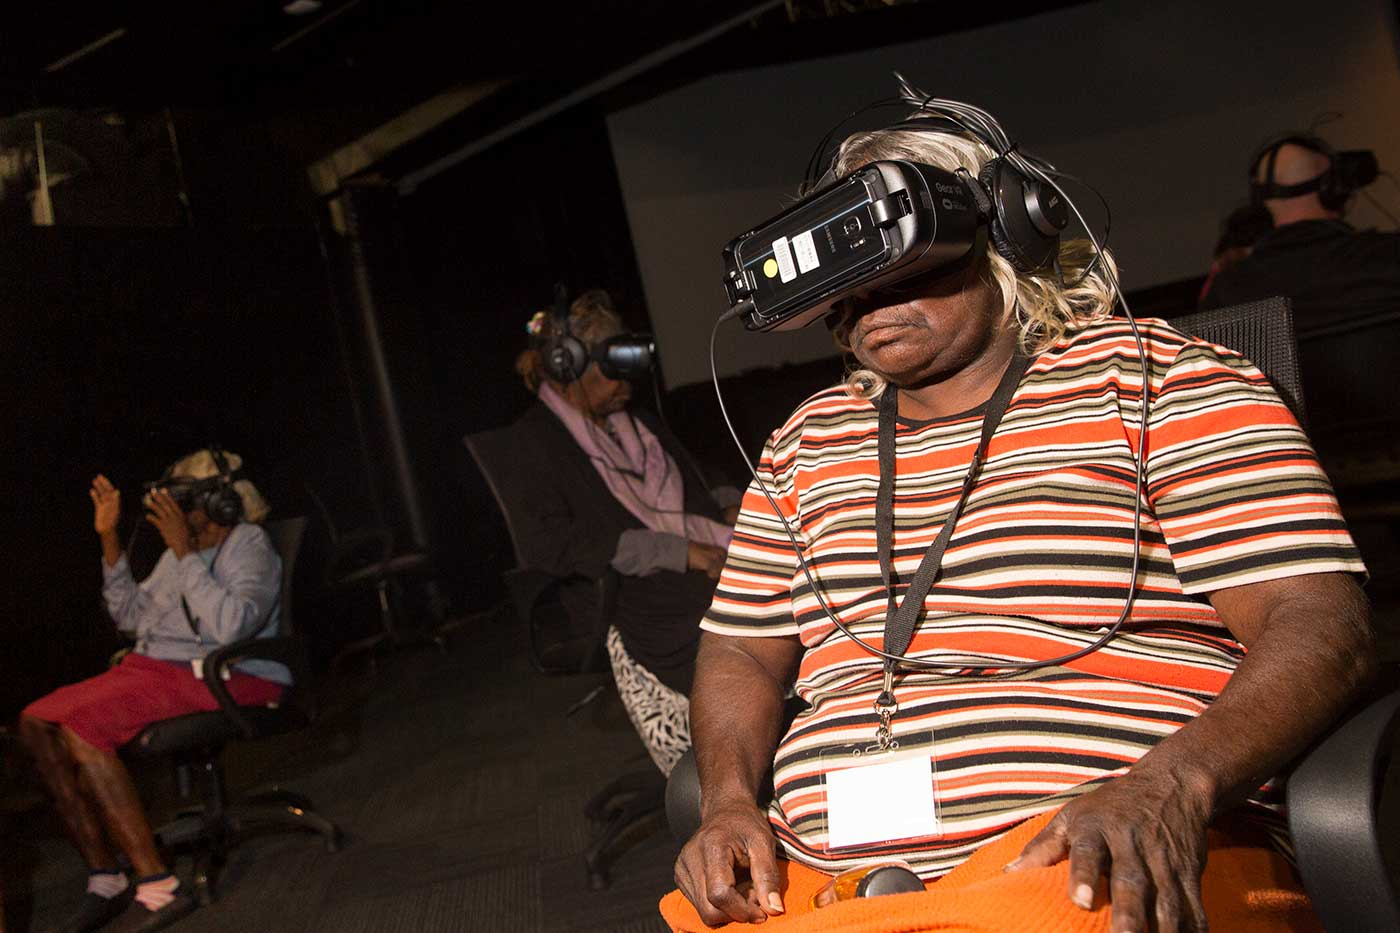 People wearing virtual reality headsets - click to view larger image